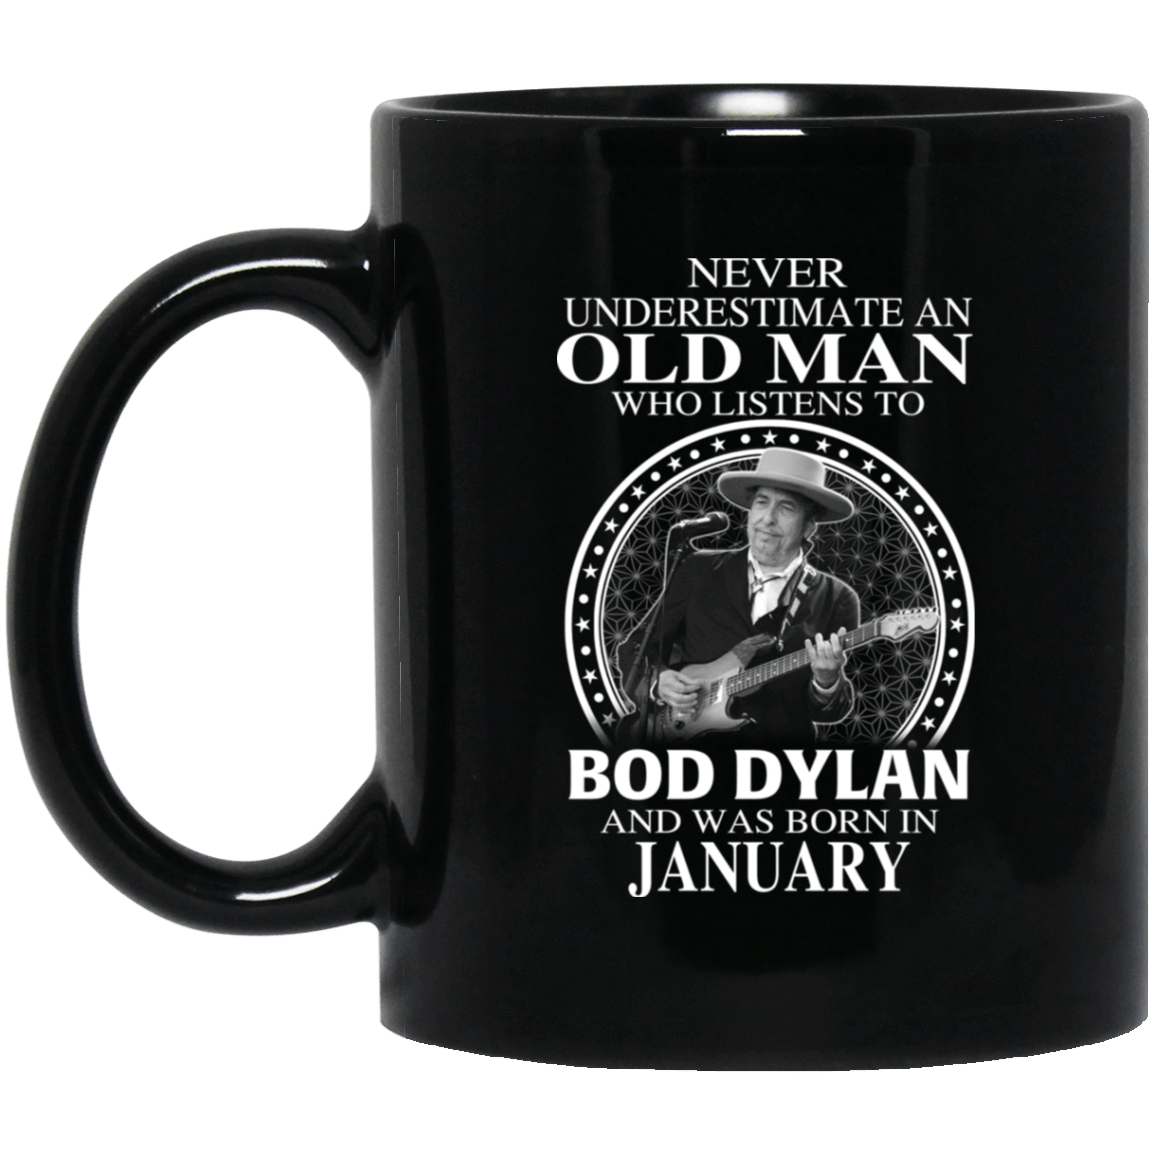 An Old Man Who Listens To Bob Dylan And Was Born In January Mug 1065-10181-76154395-49307 - Tee Ript